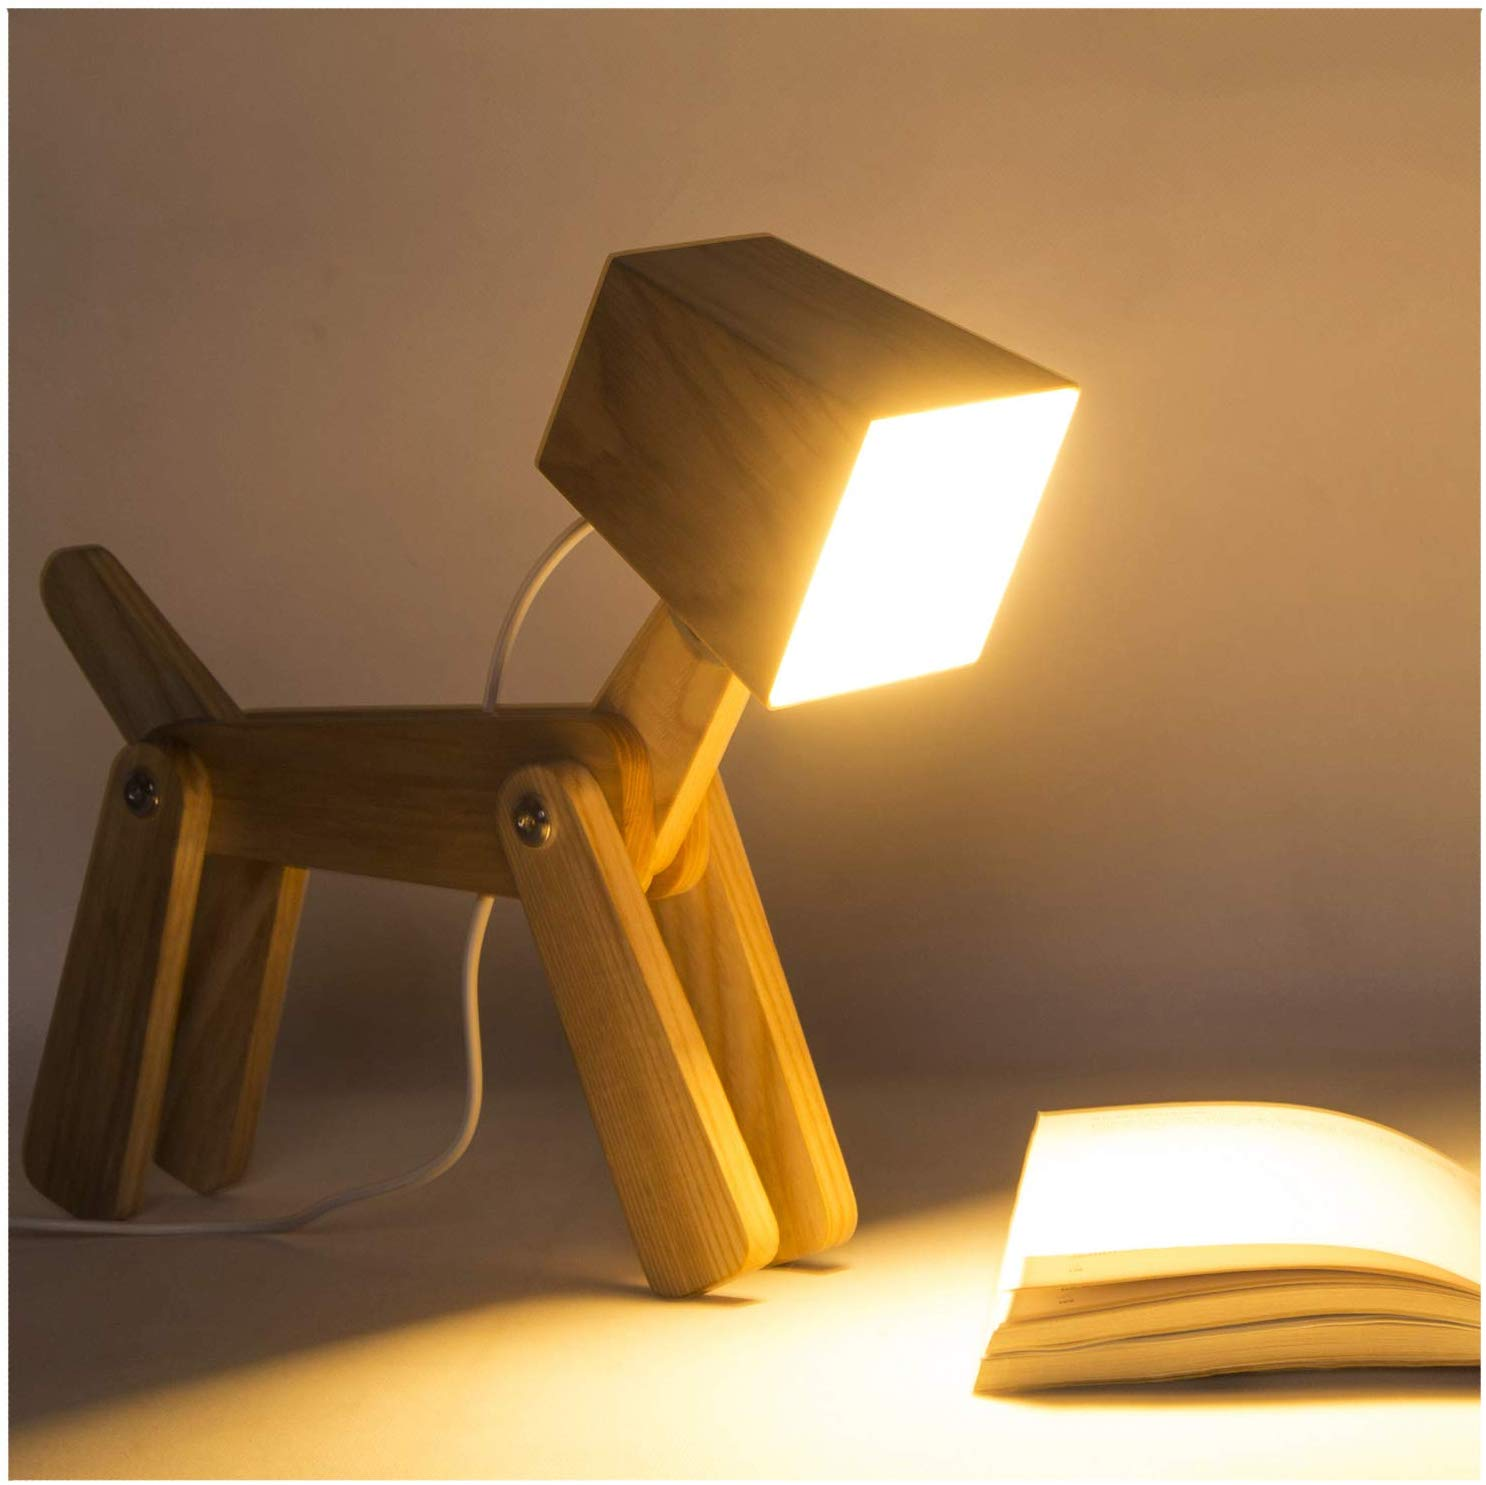 Cute Wooden Dog Design Adjustable Dimmable Bedside Table Lamp